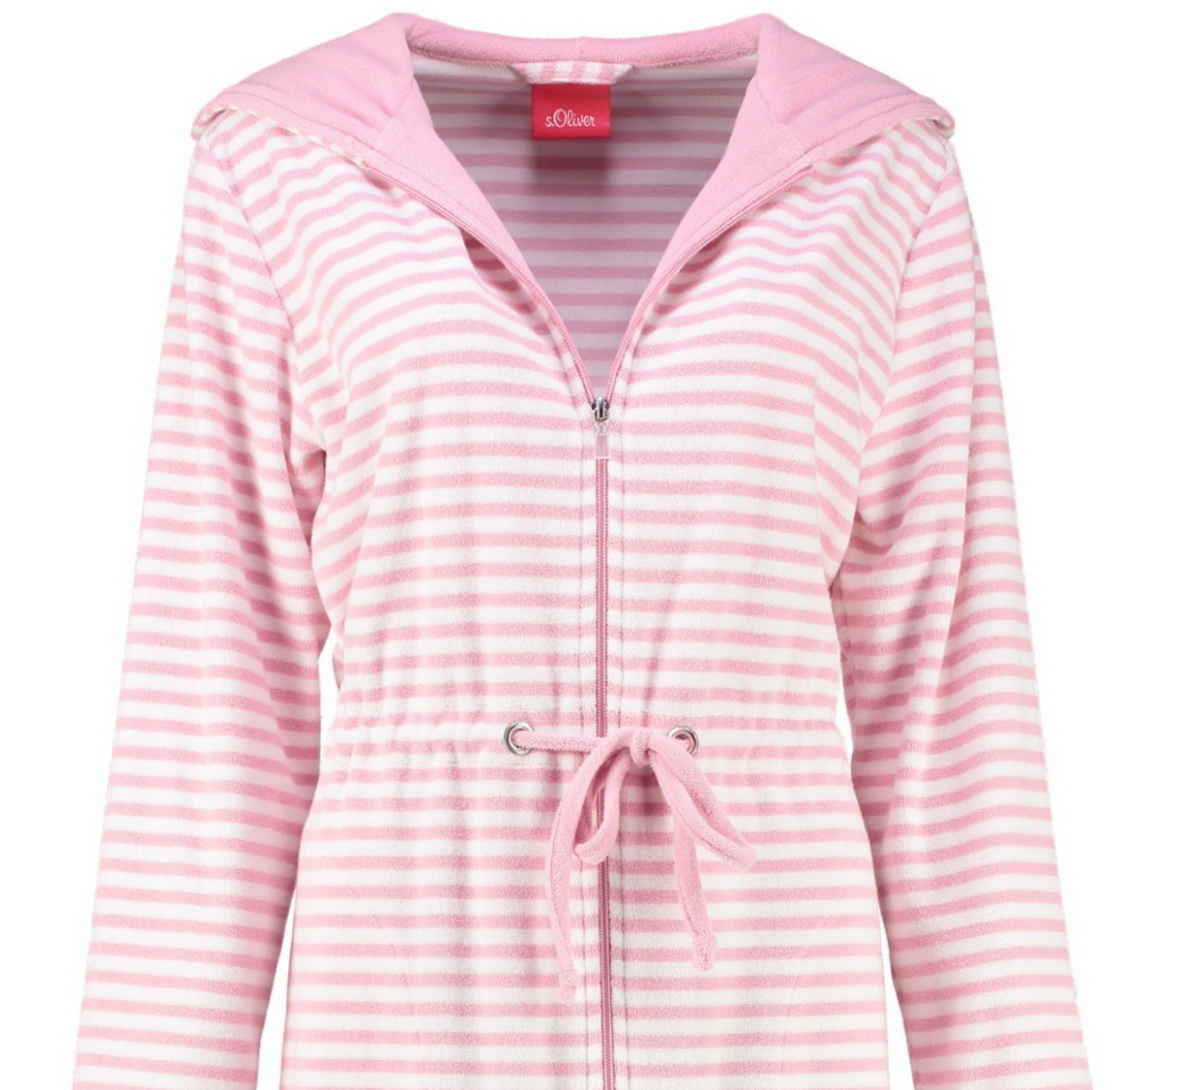 online store e35a2 2be2a s.Oliver women's hooded terry bathrobe 3713 20 pink